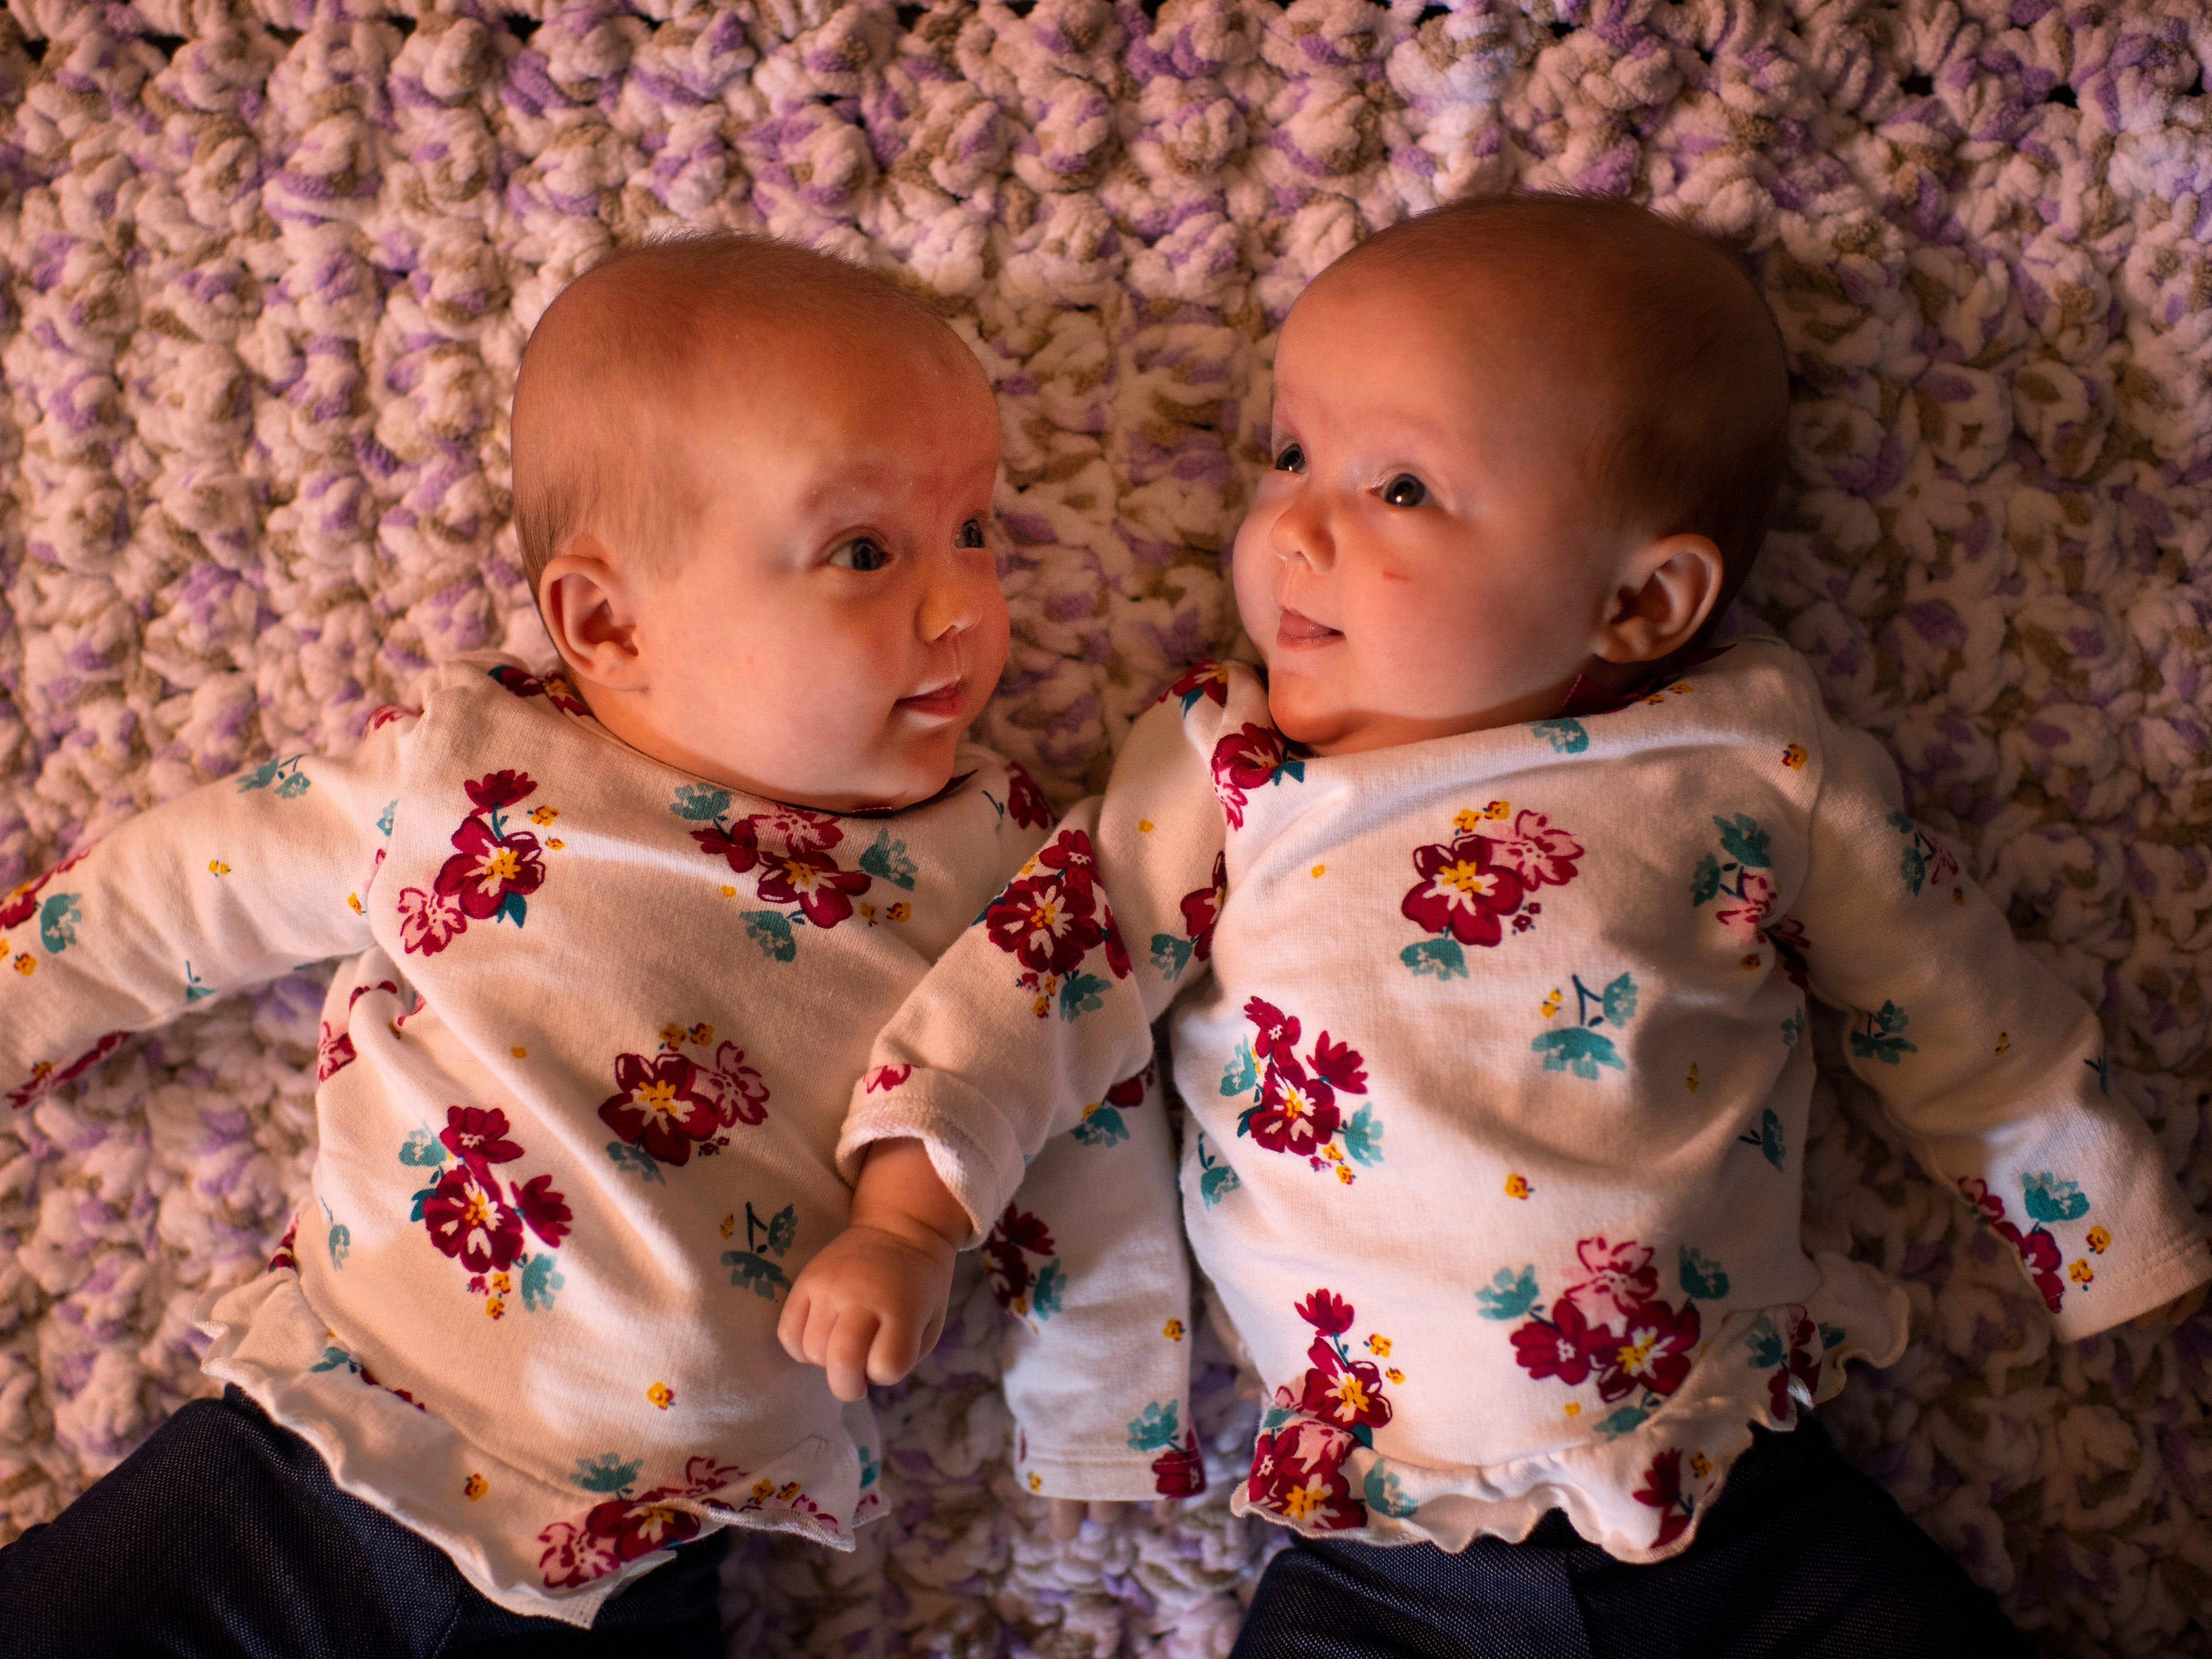 Sisters Violet, left, and Indigo have been through a lot in their four months of life. The identical twin sisters were born not quite 28 weeks into their gestational journey – 12 weeks early – to parents Heather and Dave Harper of Newburgh, Ind., on July 30, 2018. The Monoamniotic-Monochorionic twins (aka MoMo twins or Mono Mono twins) shared the same amniotic sac and placenta. The condition only occurs in about one-percent of identical twin births.